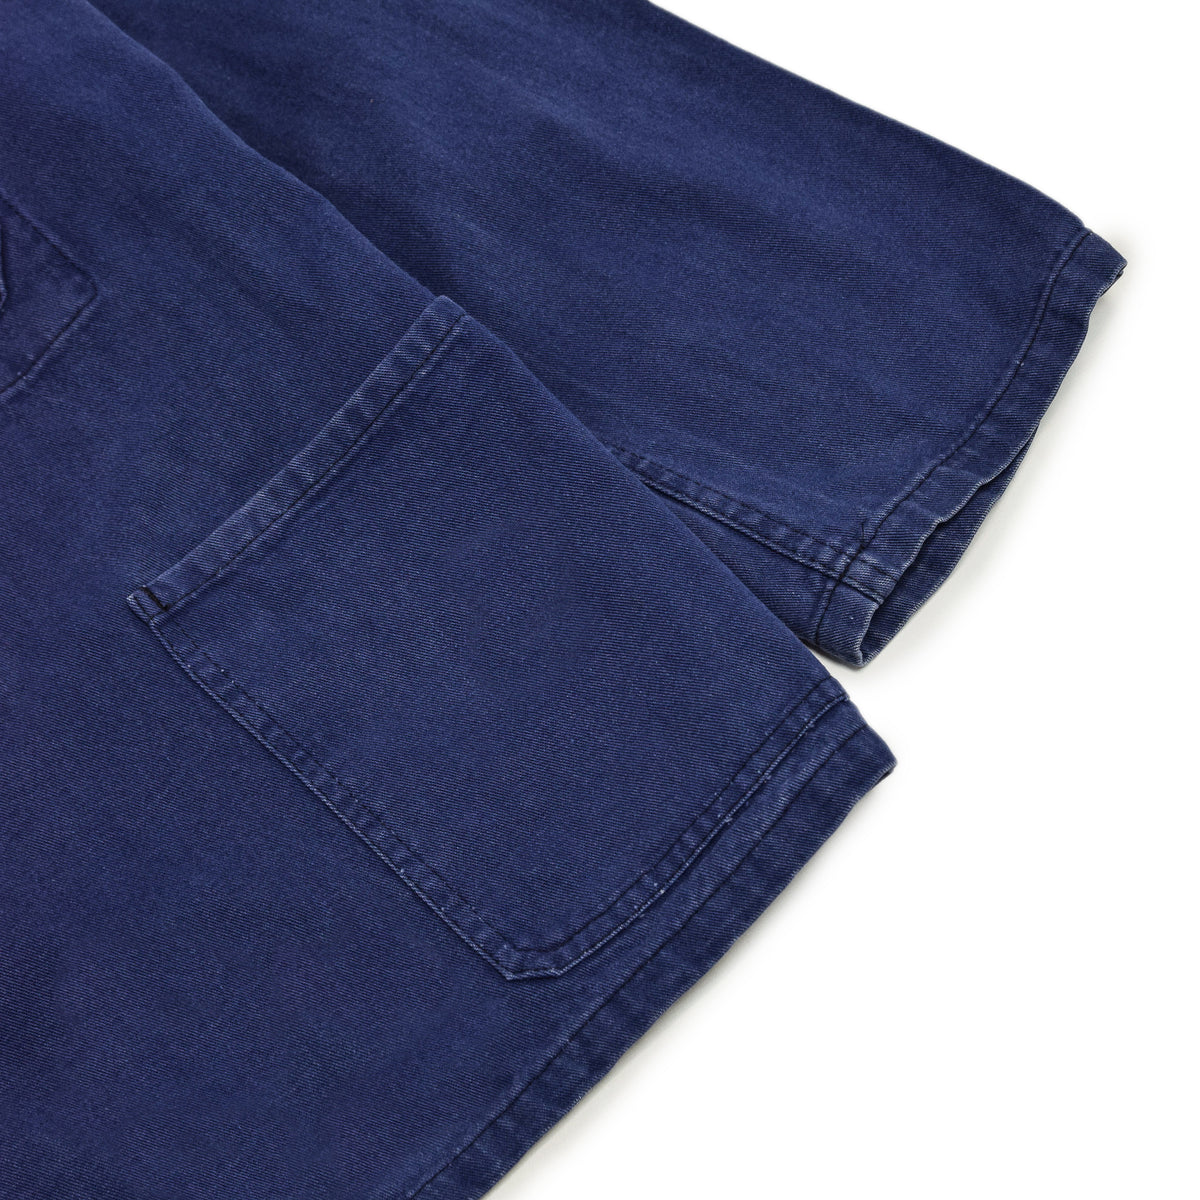 Vintage Indigo Blue French Worker Sanforized Cotton Twill Chore Jacket XXL CUFF